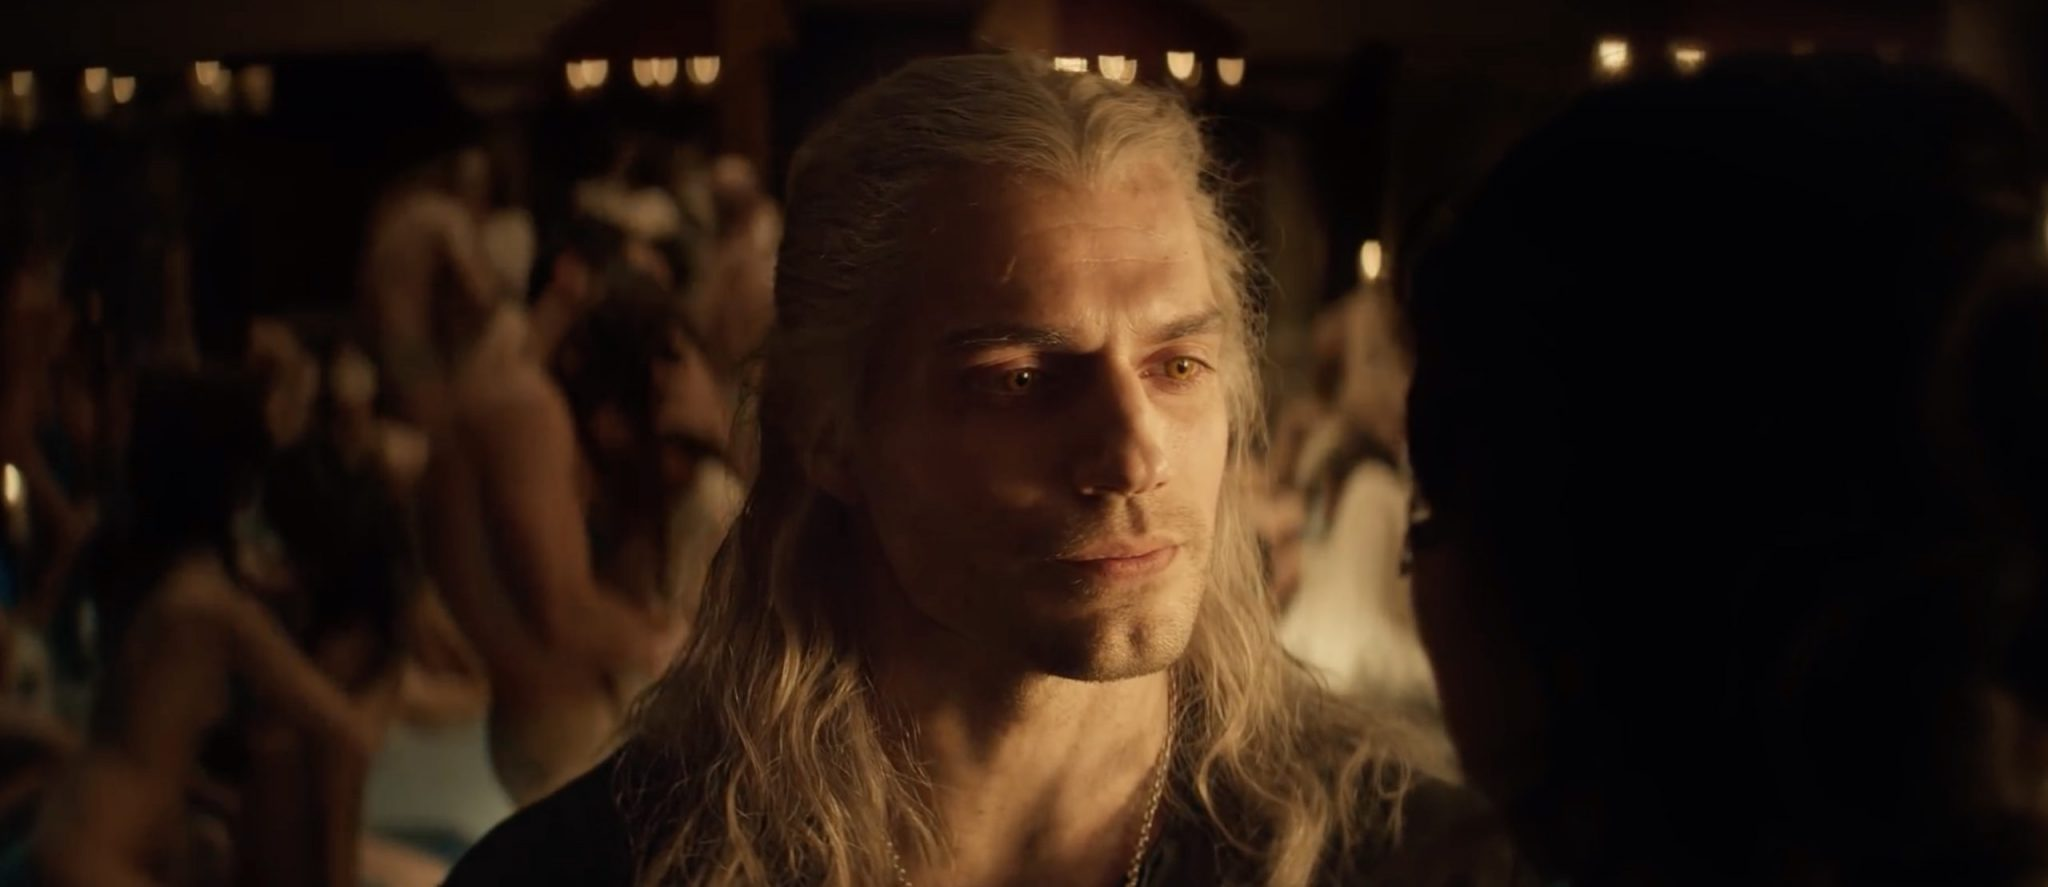 Henry Caville, Geralt of Rivia, The Witcher-https://www.youtube.com/watch?v=ndl1W4ltcmg